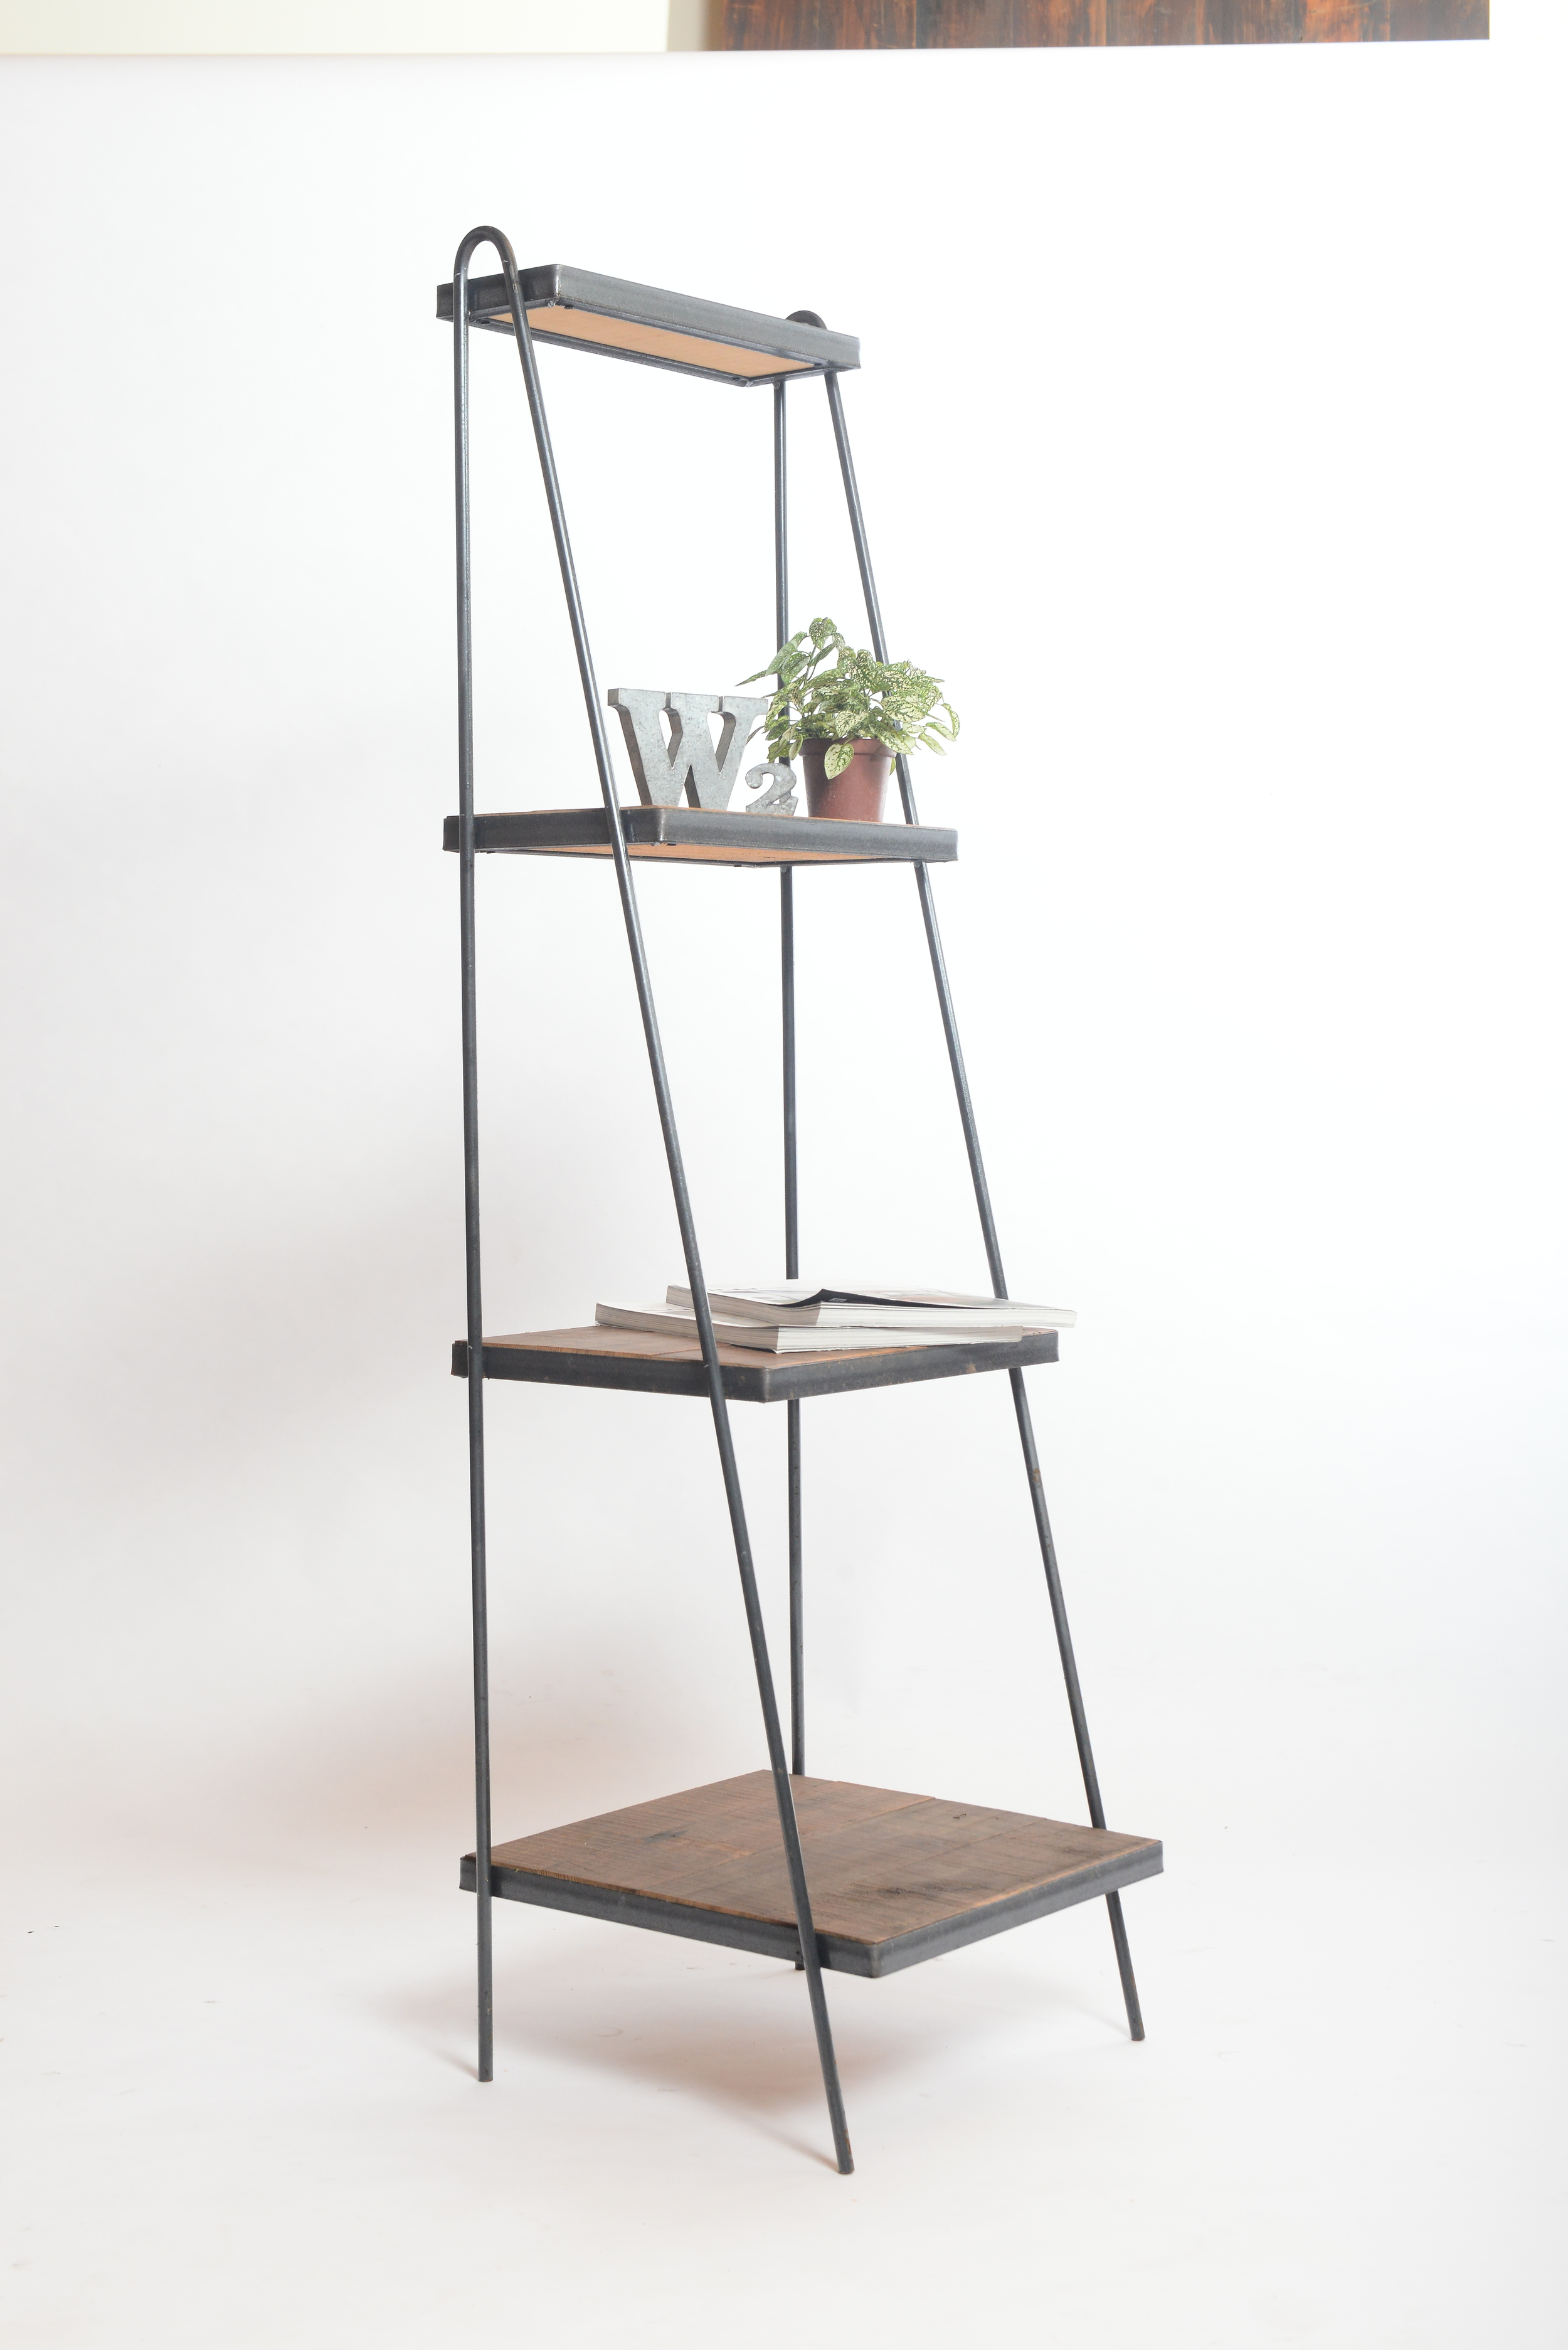 SH-I-03 Ladder shelf 01 H148*42 深梯子置物架  NT 7,800